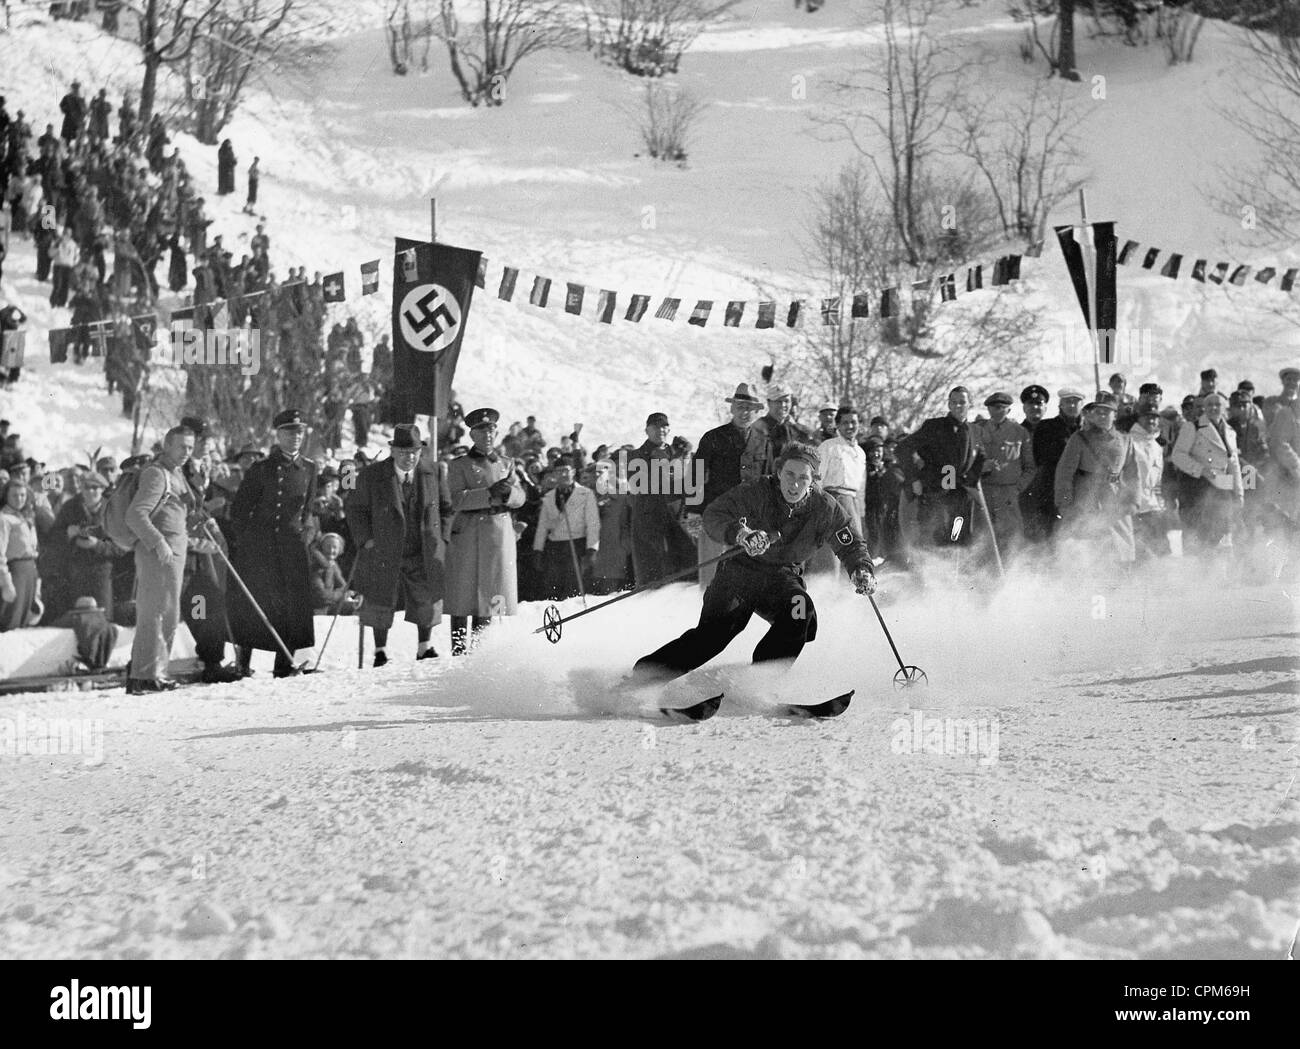 Garmisch Partenkirchen 1936 Winter Olympics